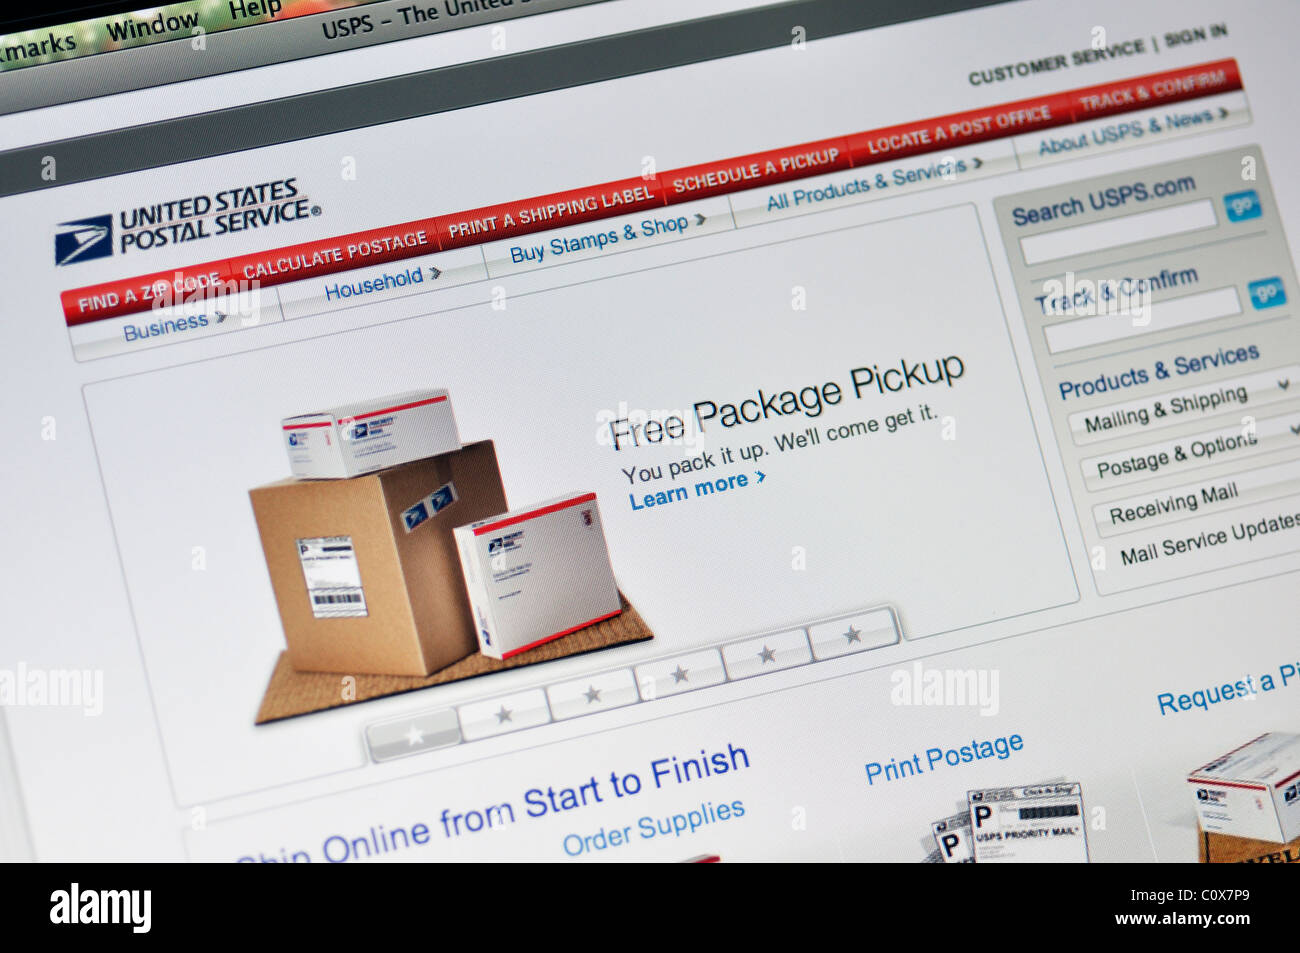 Usps Website Us Postal Service Stock Photo Alamy